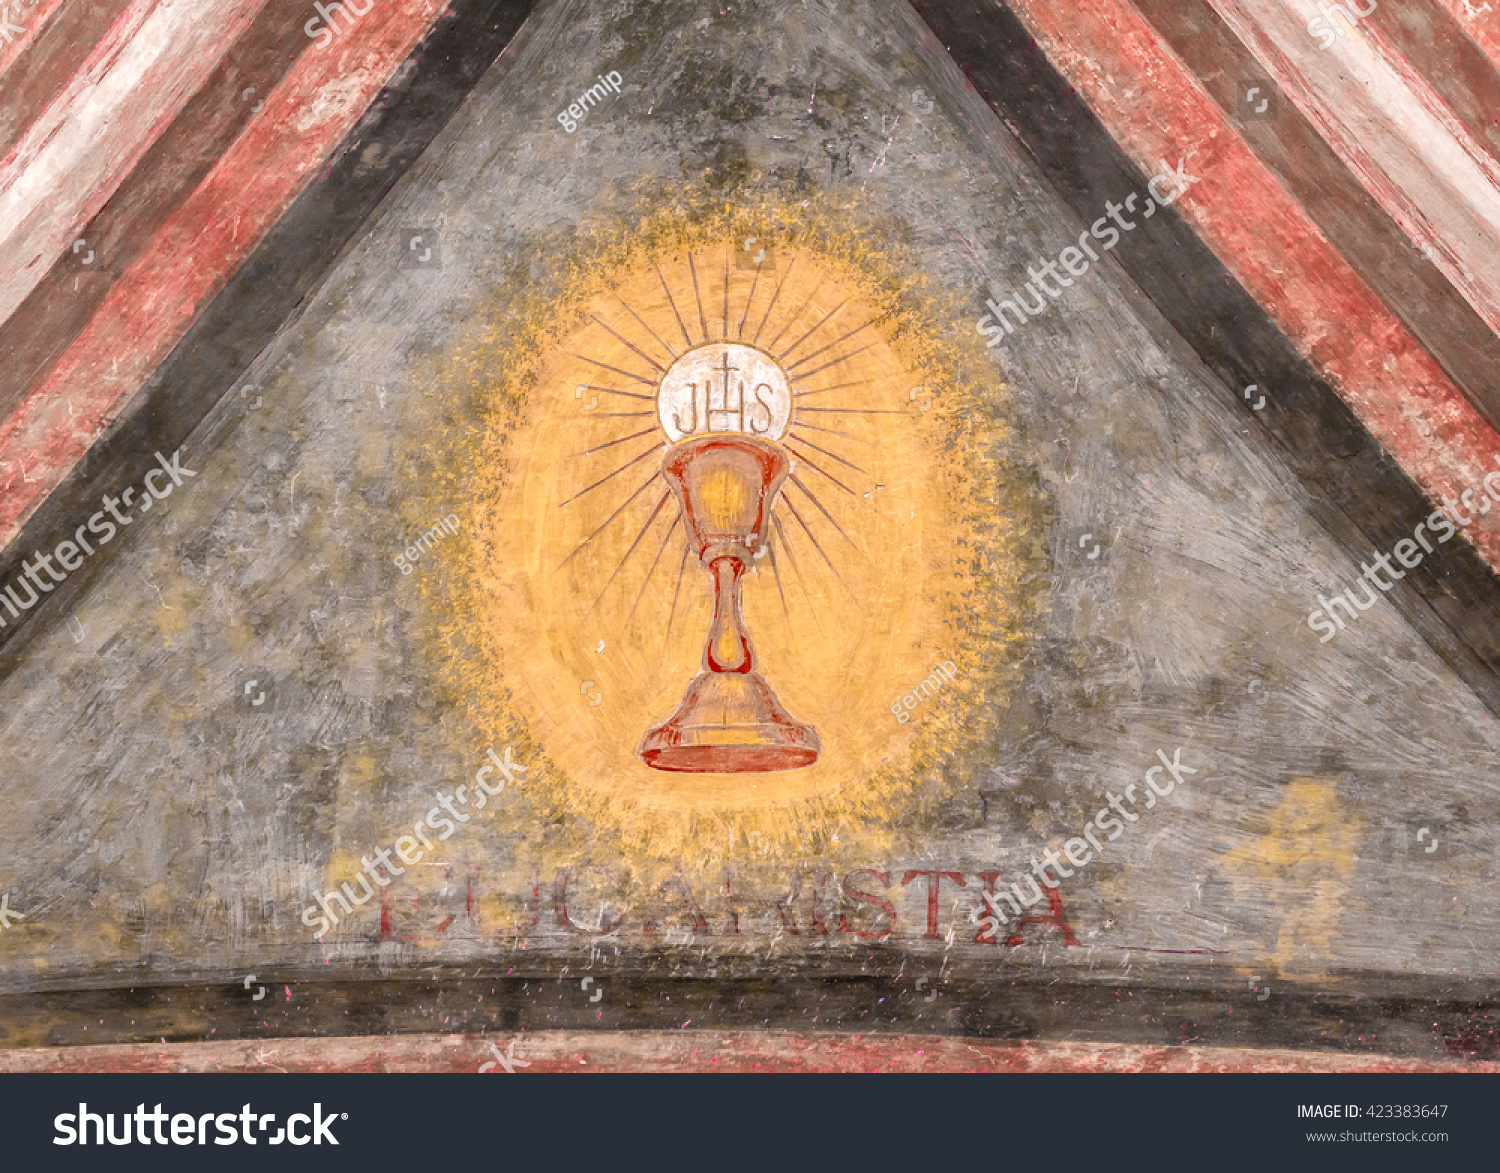 A fresco depicting the sacred chalice of Jesus Eucaristia in Italian means Eucharist Holy Communion Communion